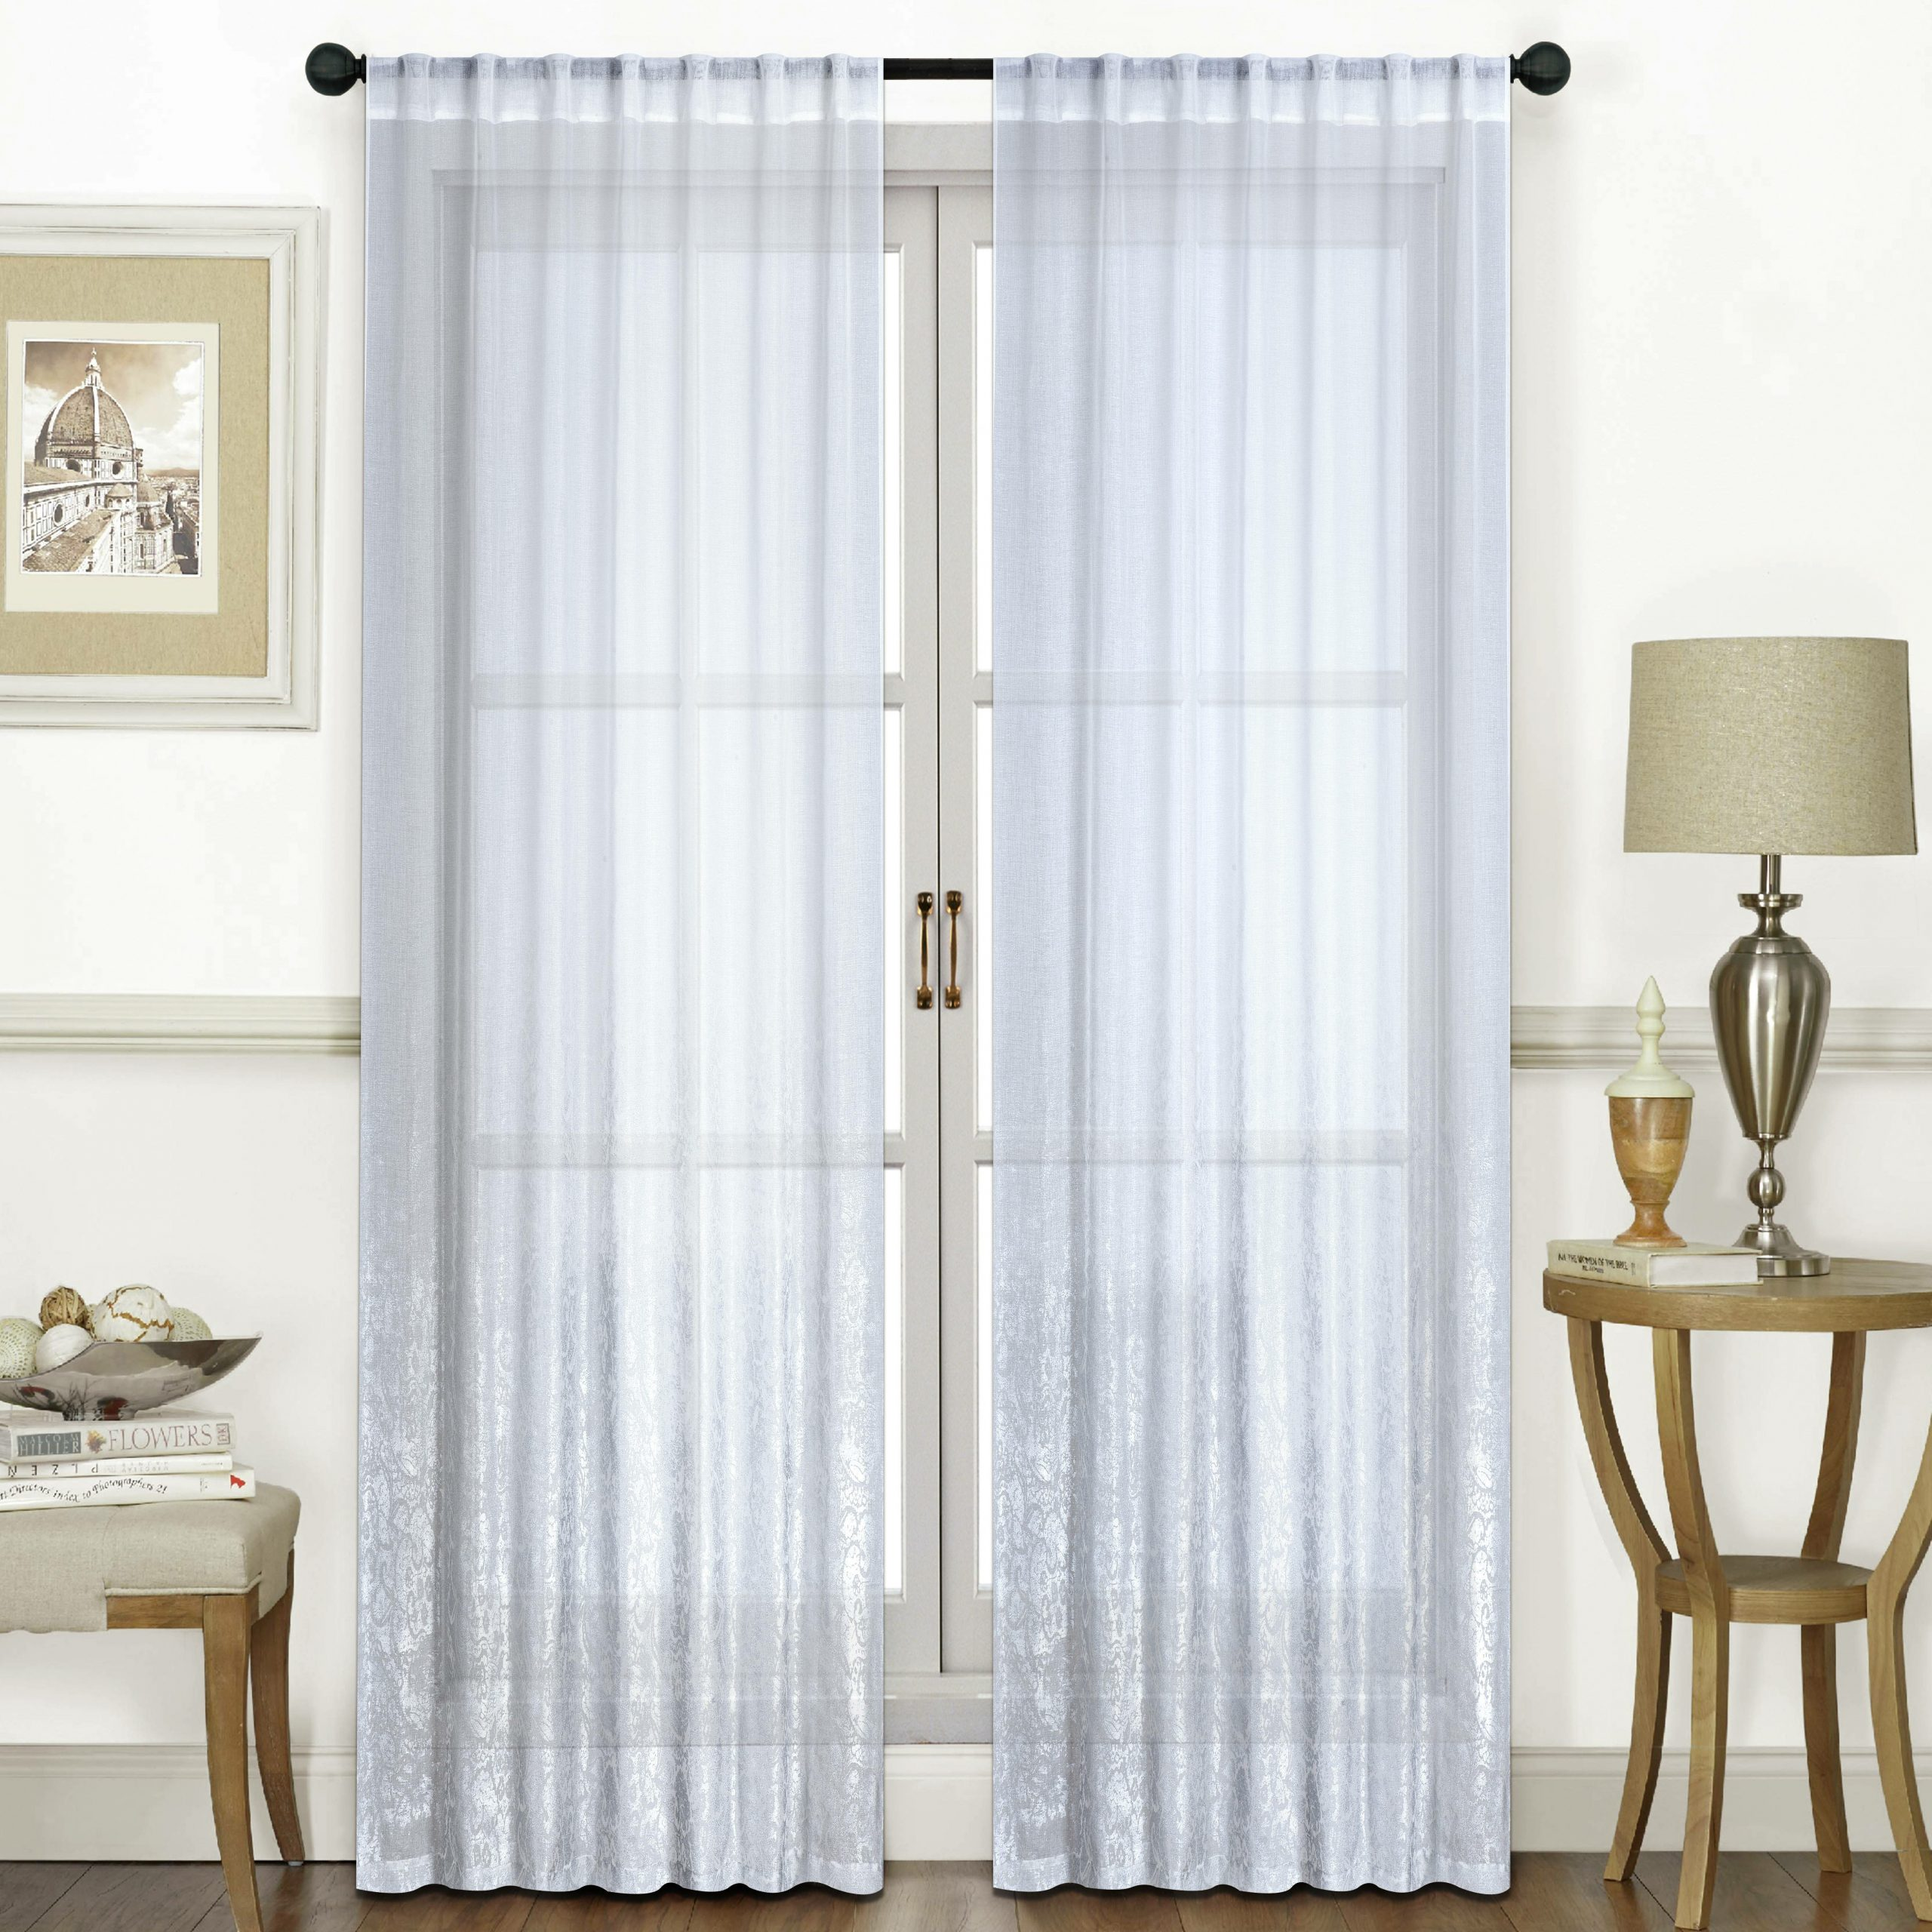 Ombre Solid Semi Sheer Rod Pocket Curtain Panels Inside Most Current Rod Pocket Curtain Panels (View 19 of 20)